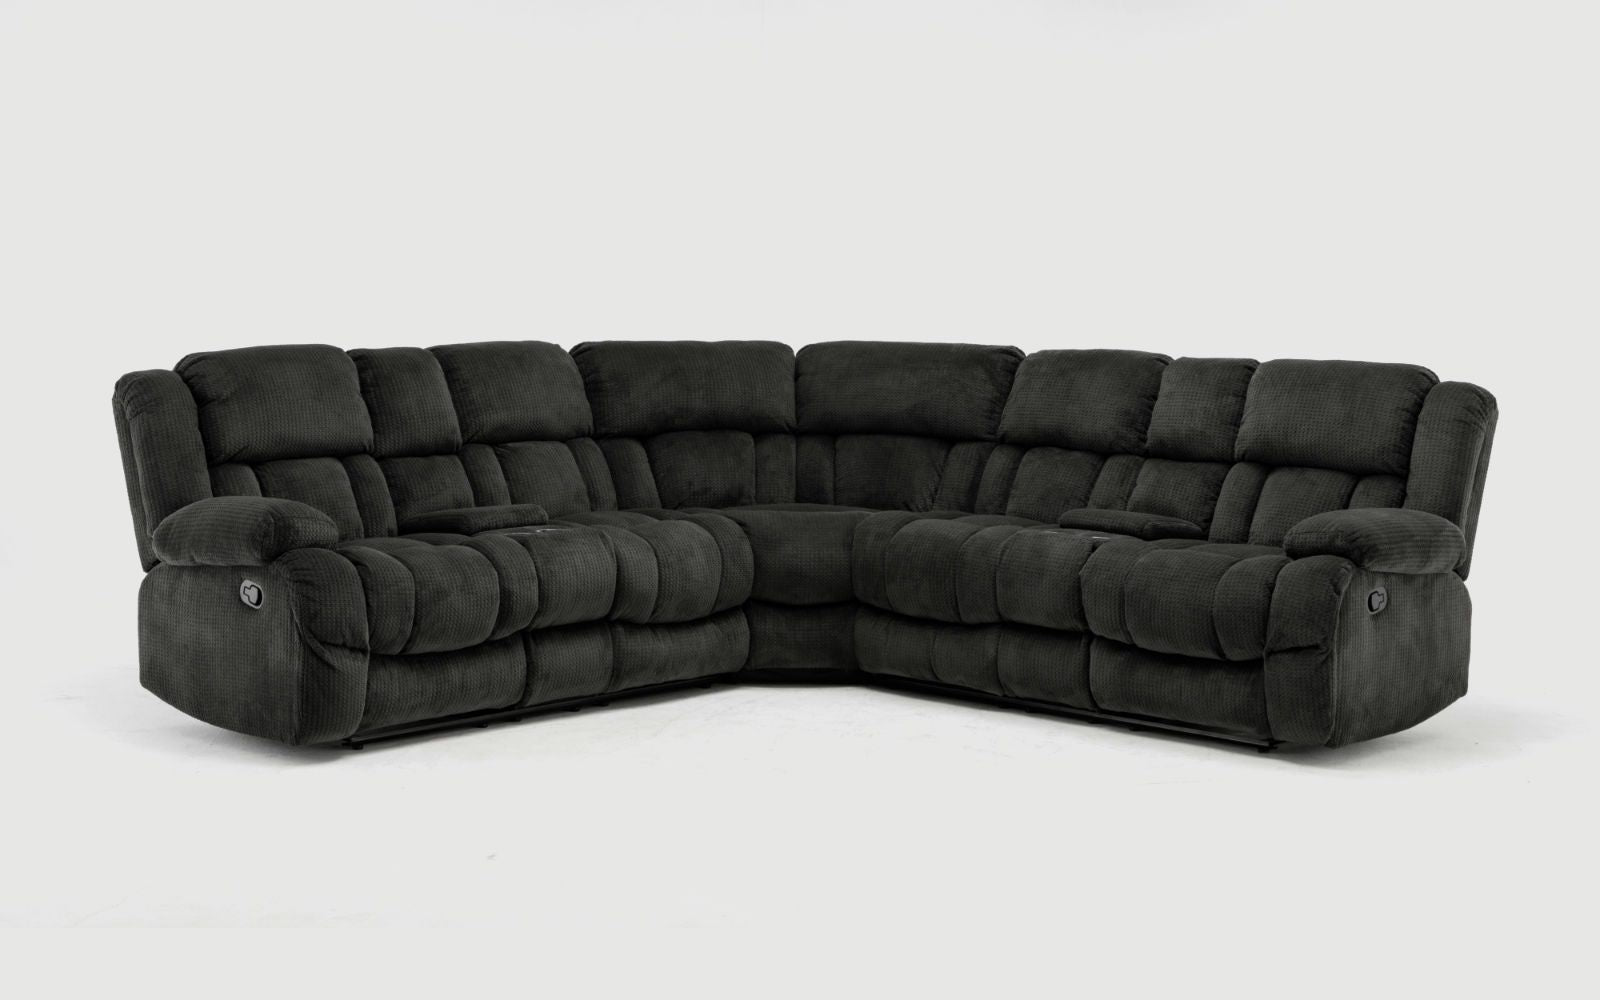 Raymond Linen Fabric L Shape Sectional Recliner Sofa  : REC19 FB DBLU7A from www.sofamania.com size 1600 x 1000 jpeg 86kB